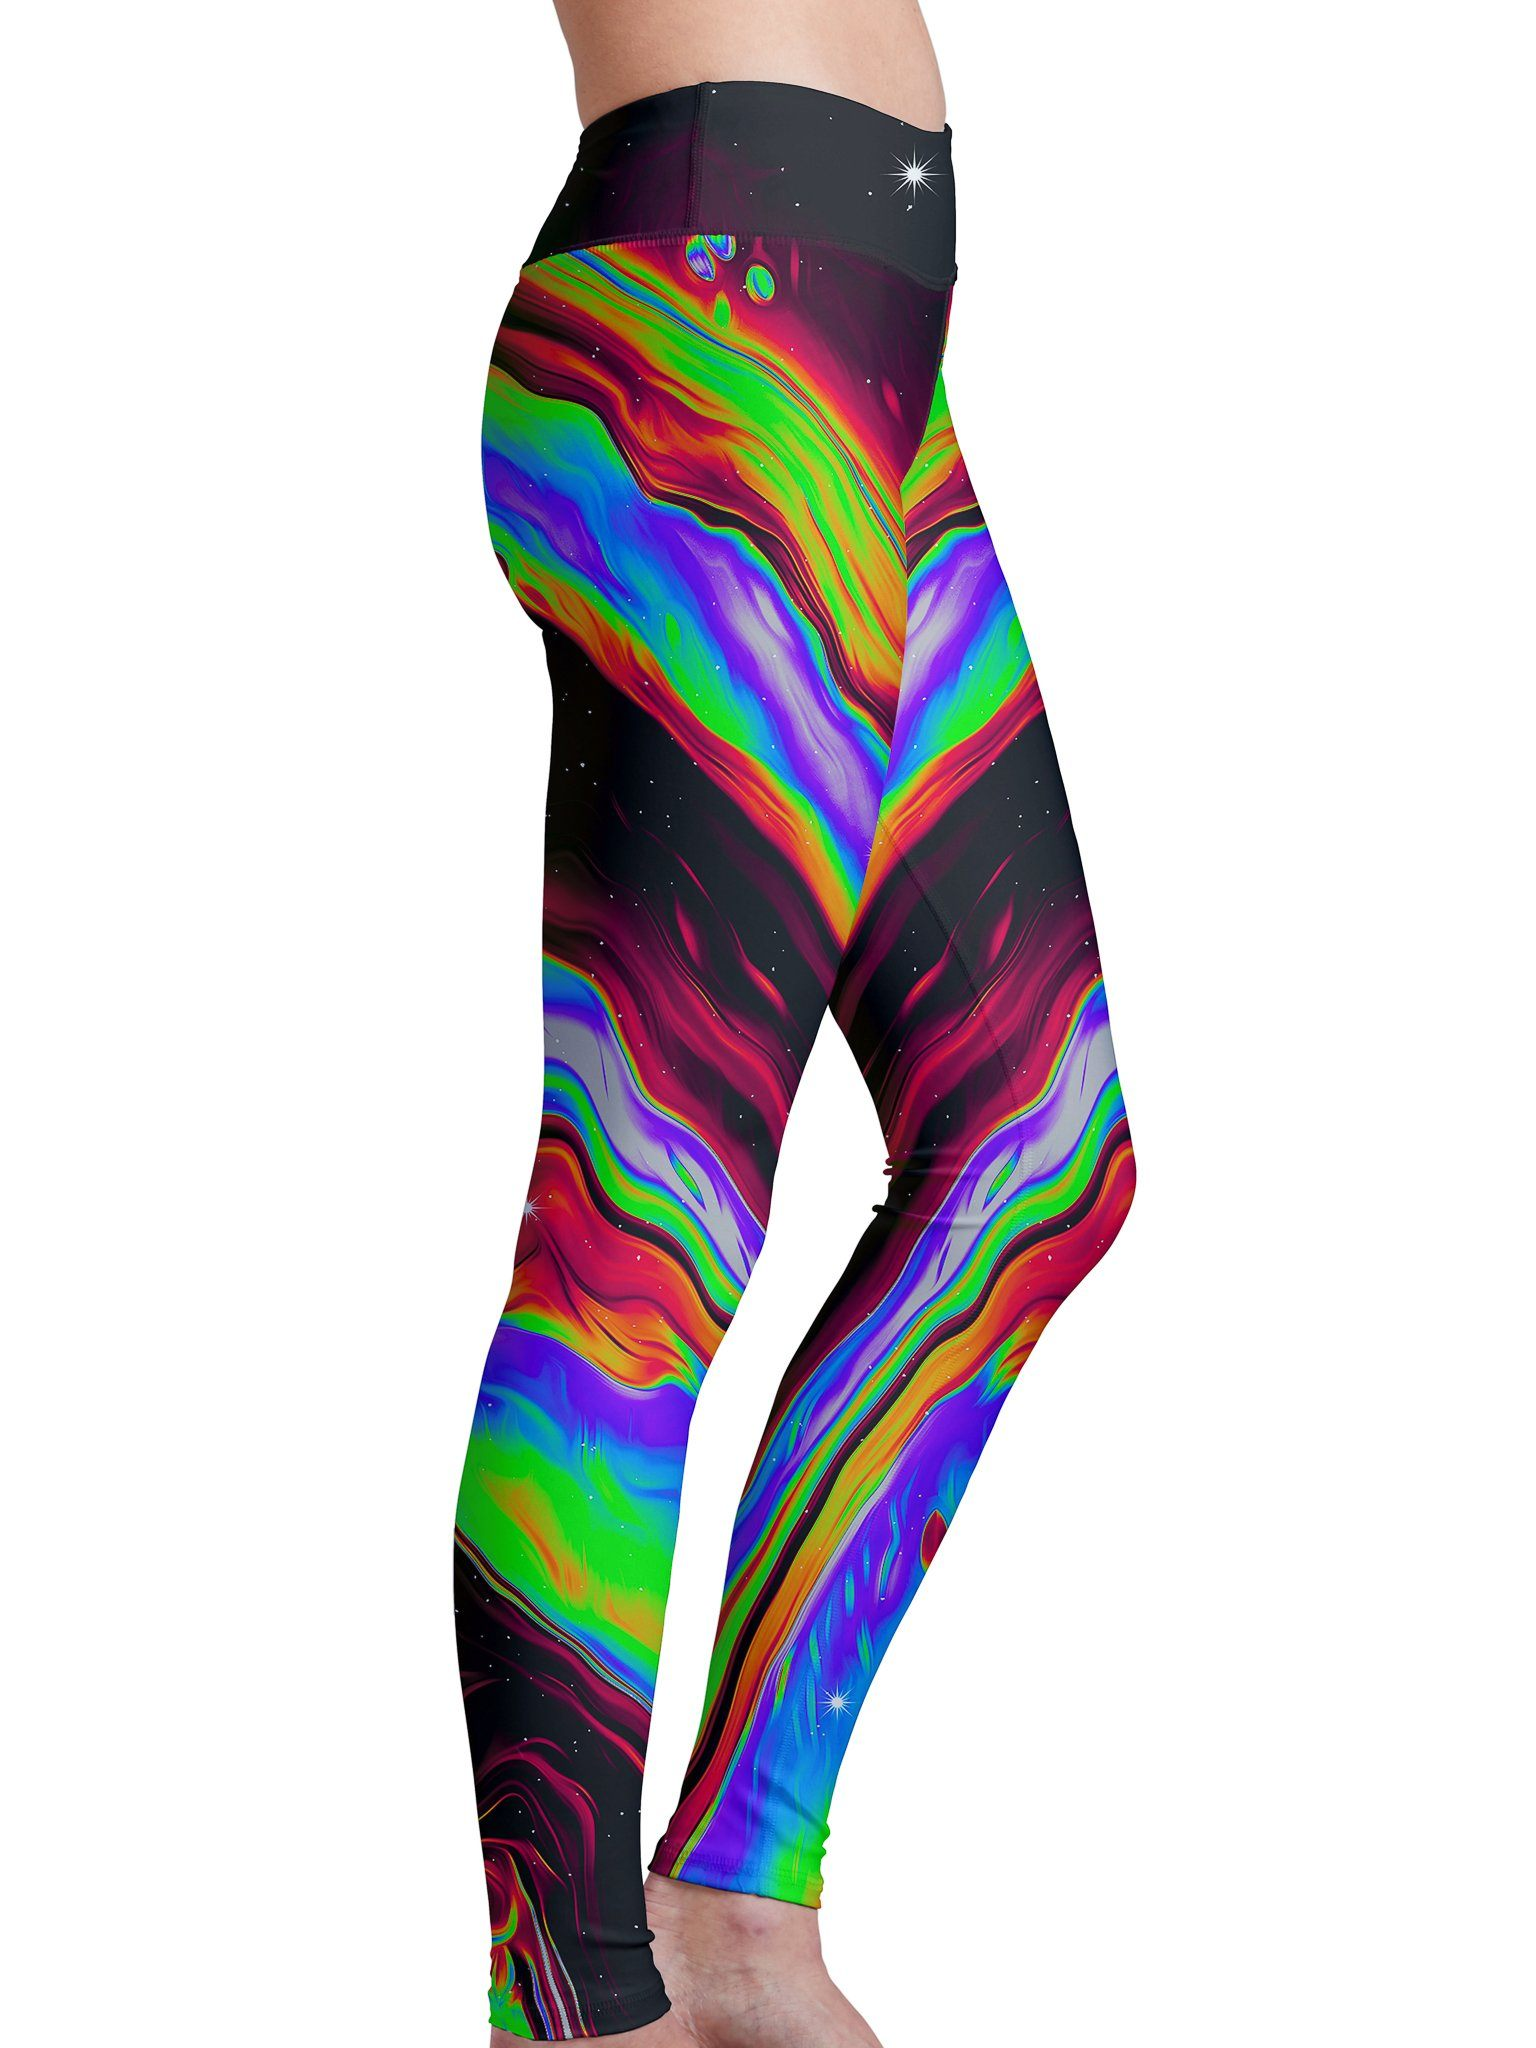 Neon Venus Fly Trap Leggings Leggings Electro Threads